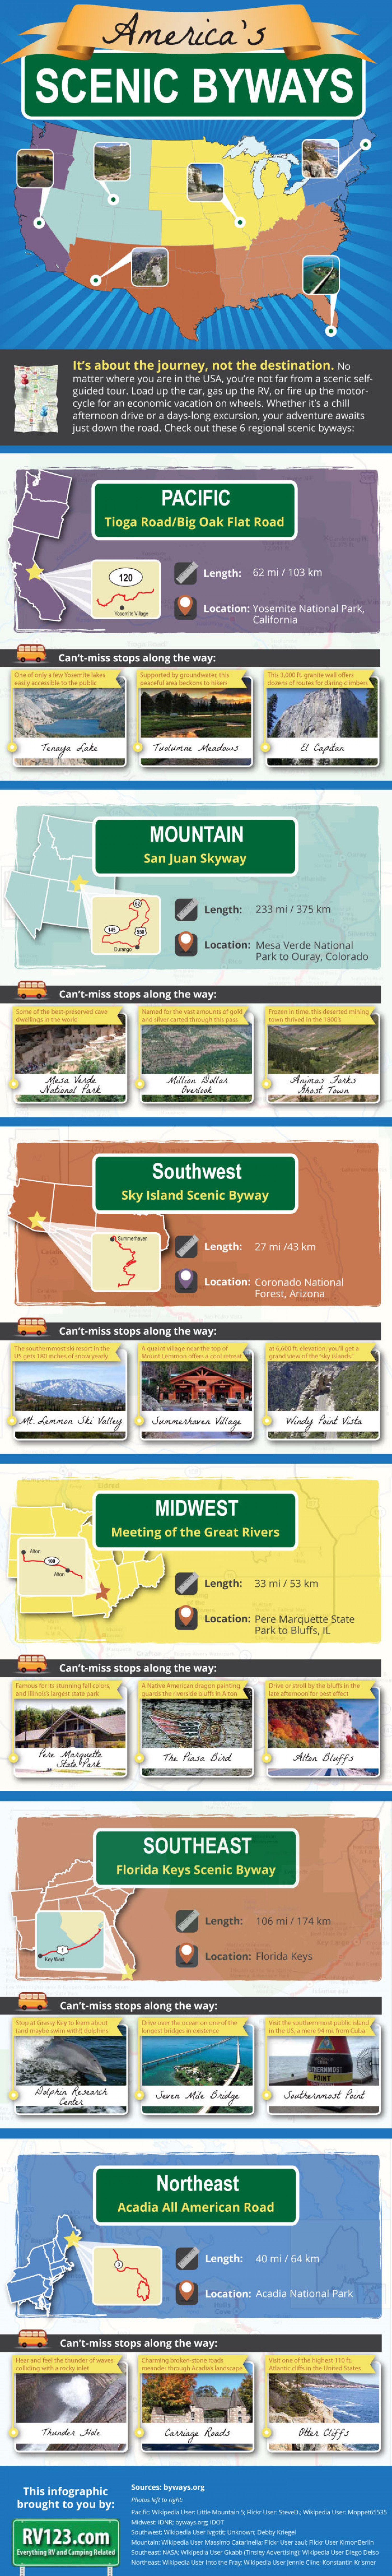 America's Scenic Byways Infographic